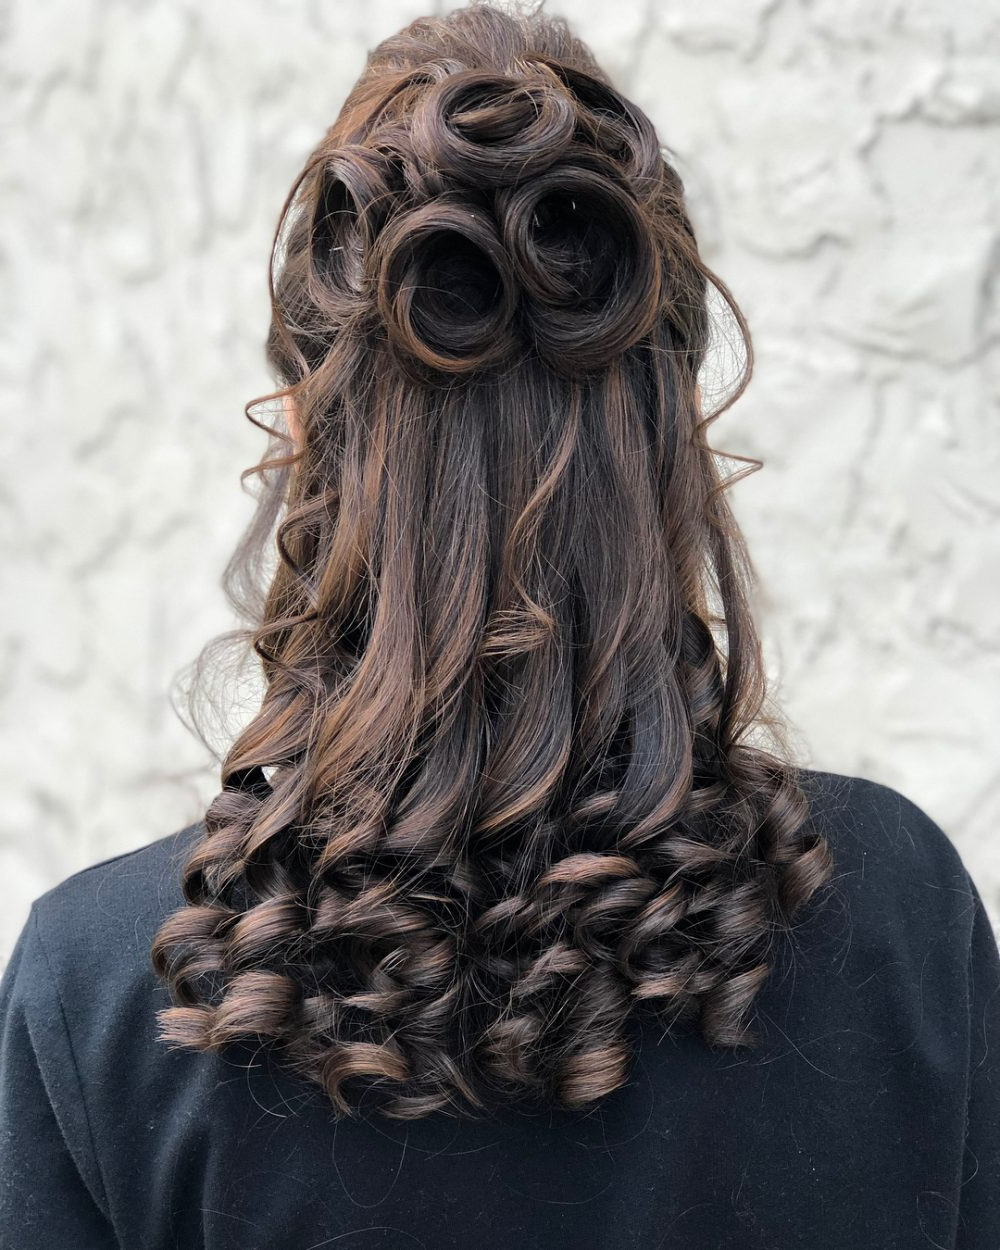 Current Charming Waves And Curls Prom Hairstyles Regarding 23 Cute Prom Hairstyles For 2019 – Updos, Braids, Half Ups & Down Dos (View 7 of 20)